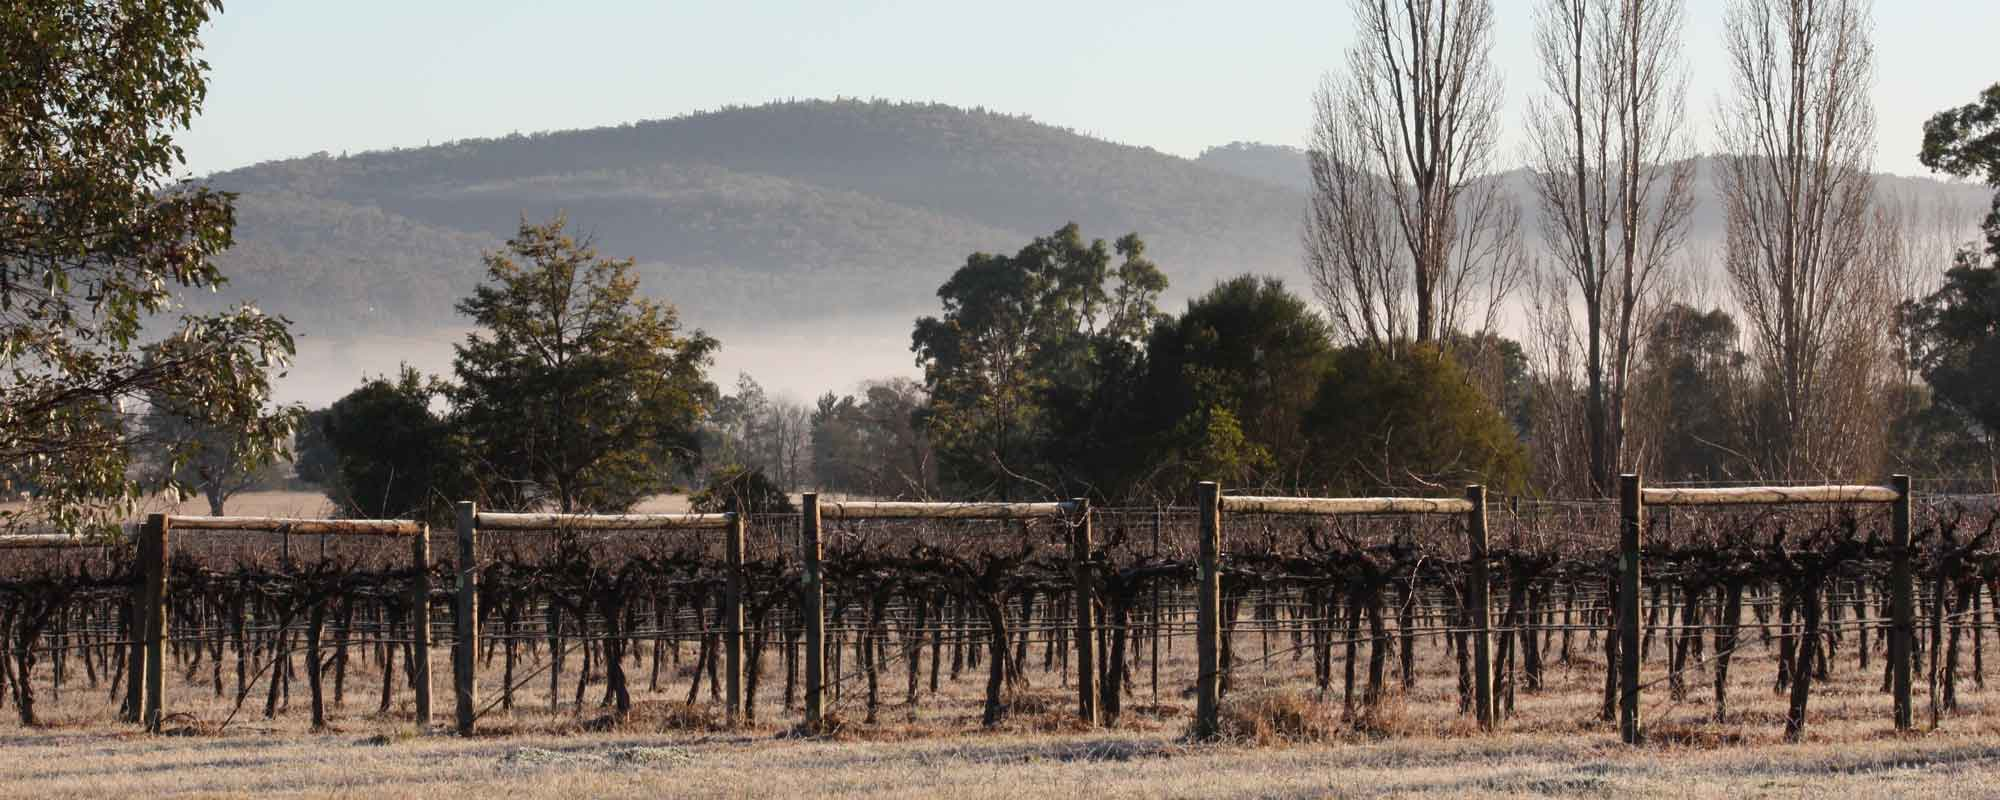 vineyard view frosty